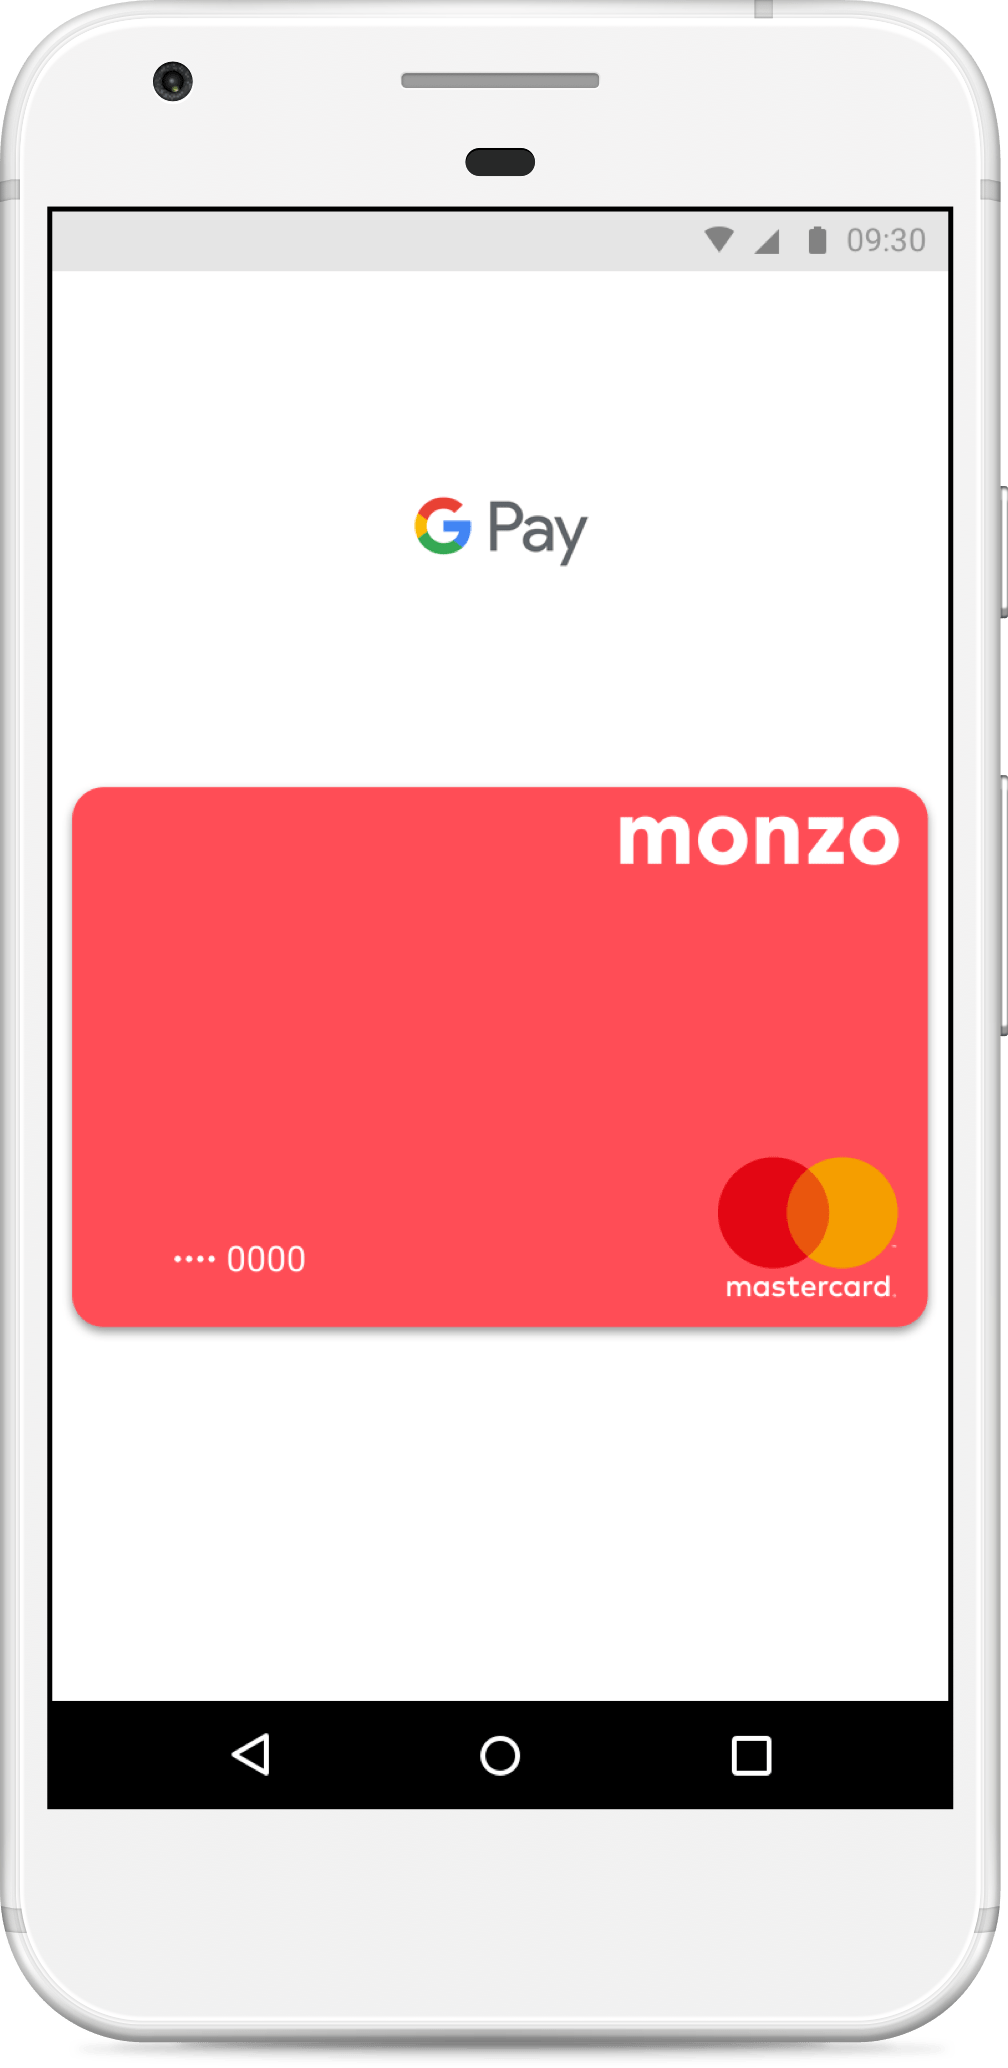 Google Pay on an Android smartphone